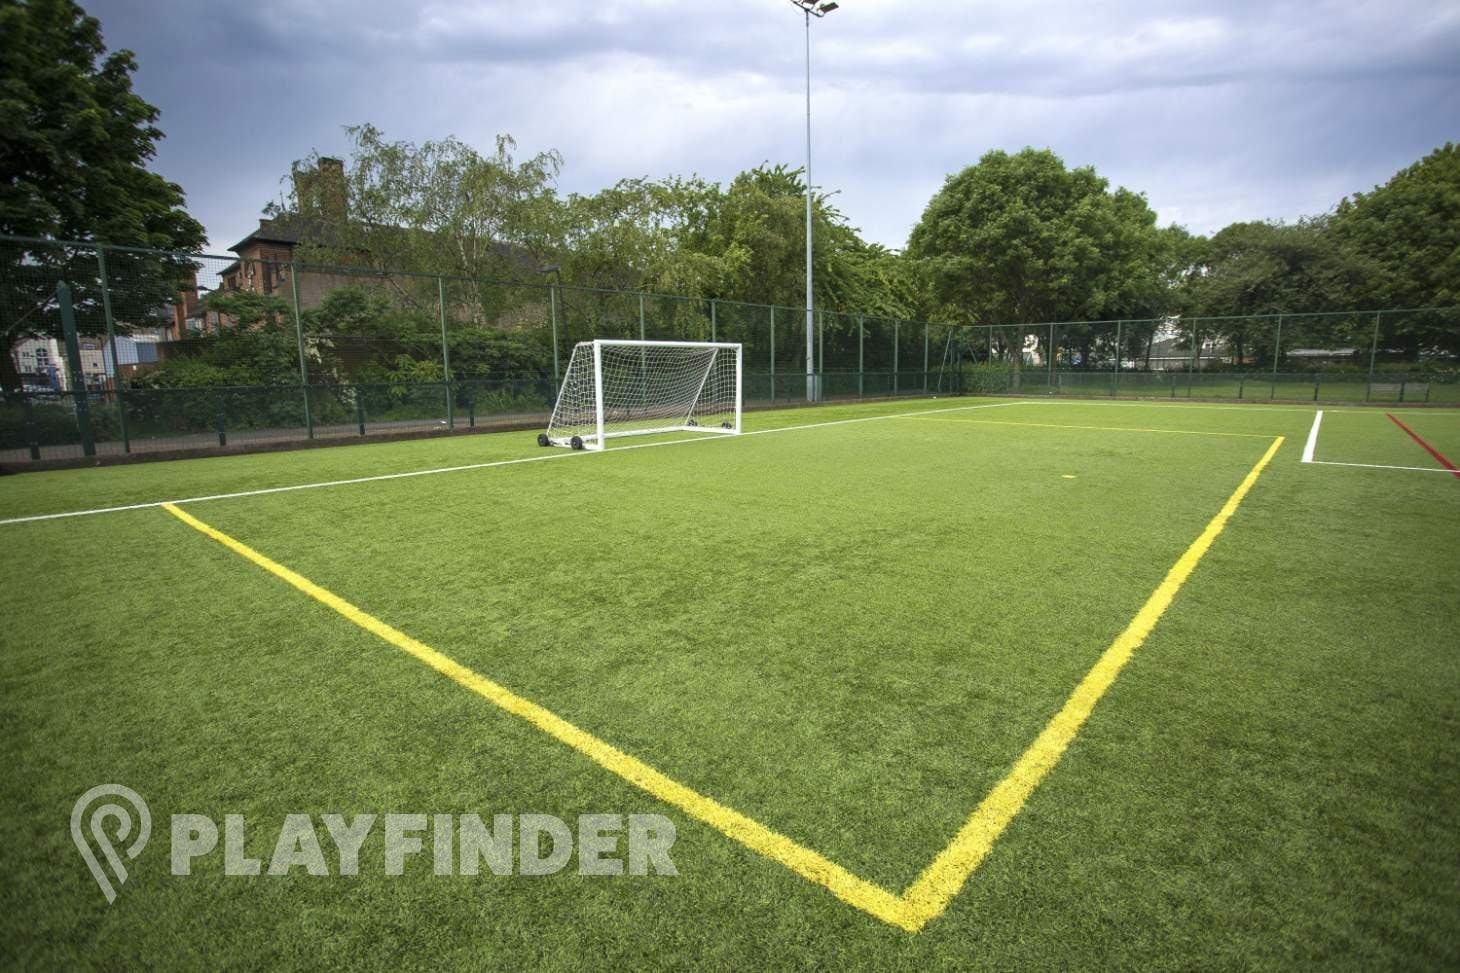 Haggerston Park 5 a side | 3G Astroturf football pitch